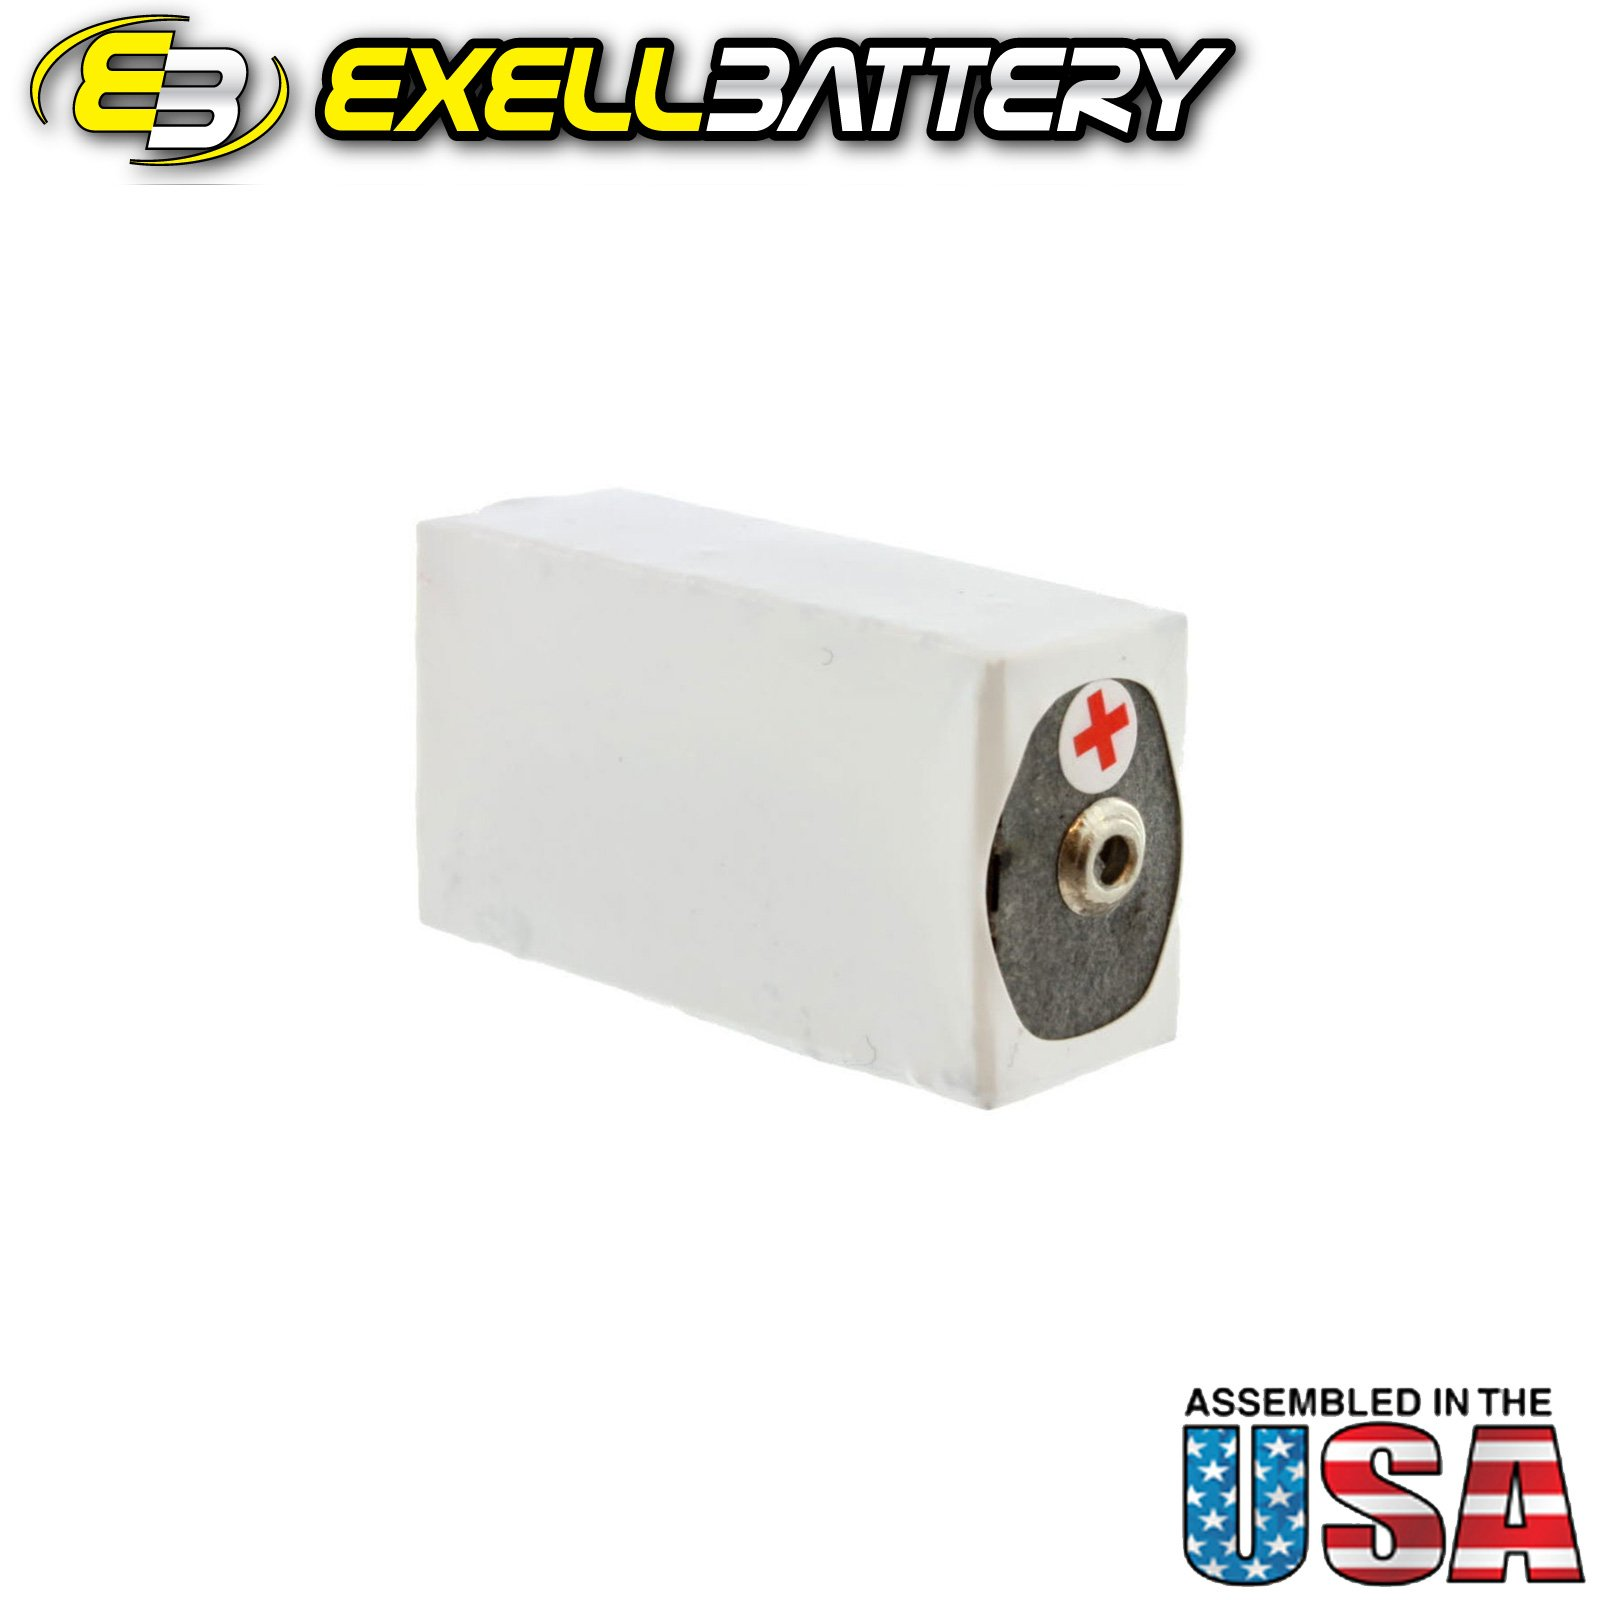 20pc Exell 412A Alkaline 22.5V Battery NEDA 215, 15F20, BLR122 by Exell Battery (Image #3)